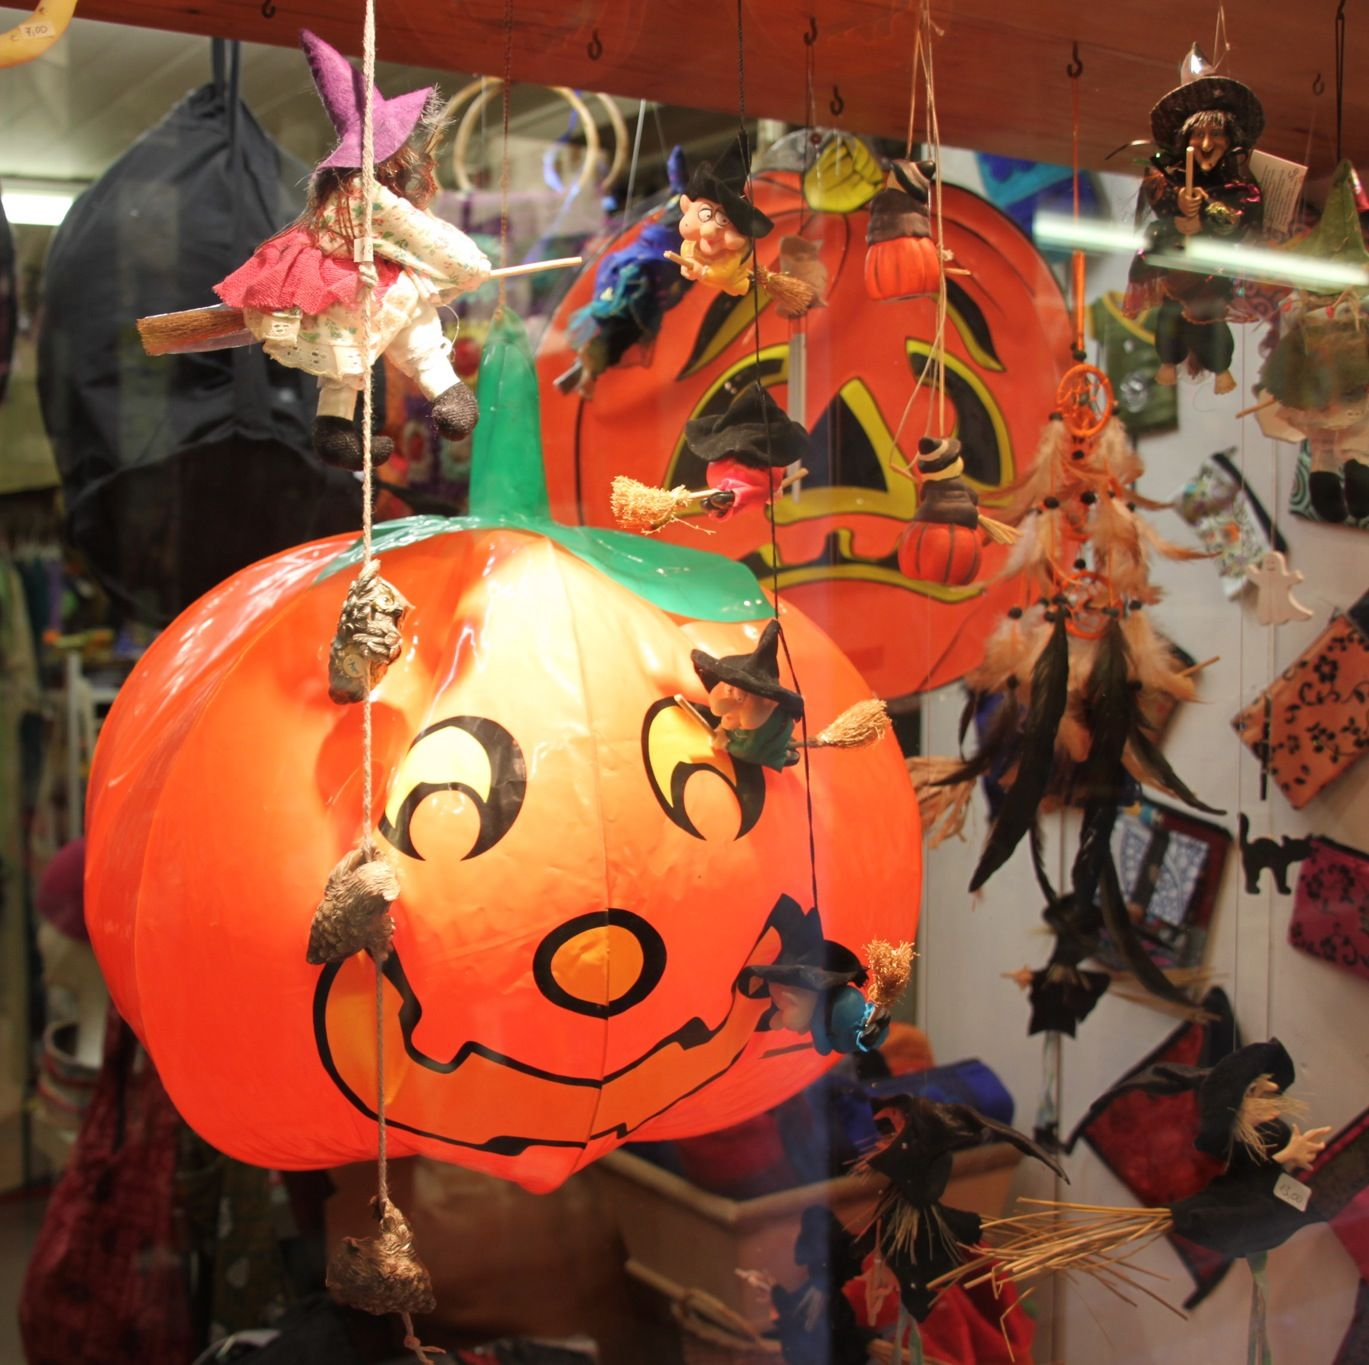 The American and British tradition of carving pumpkin lanterns to scare away evil spirits is seen in some of the larger Italian cities, but is not typically Italian